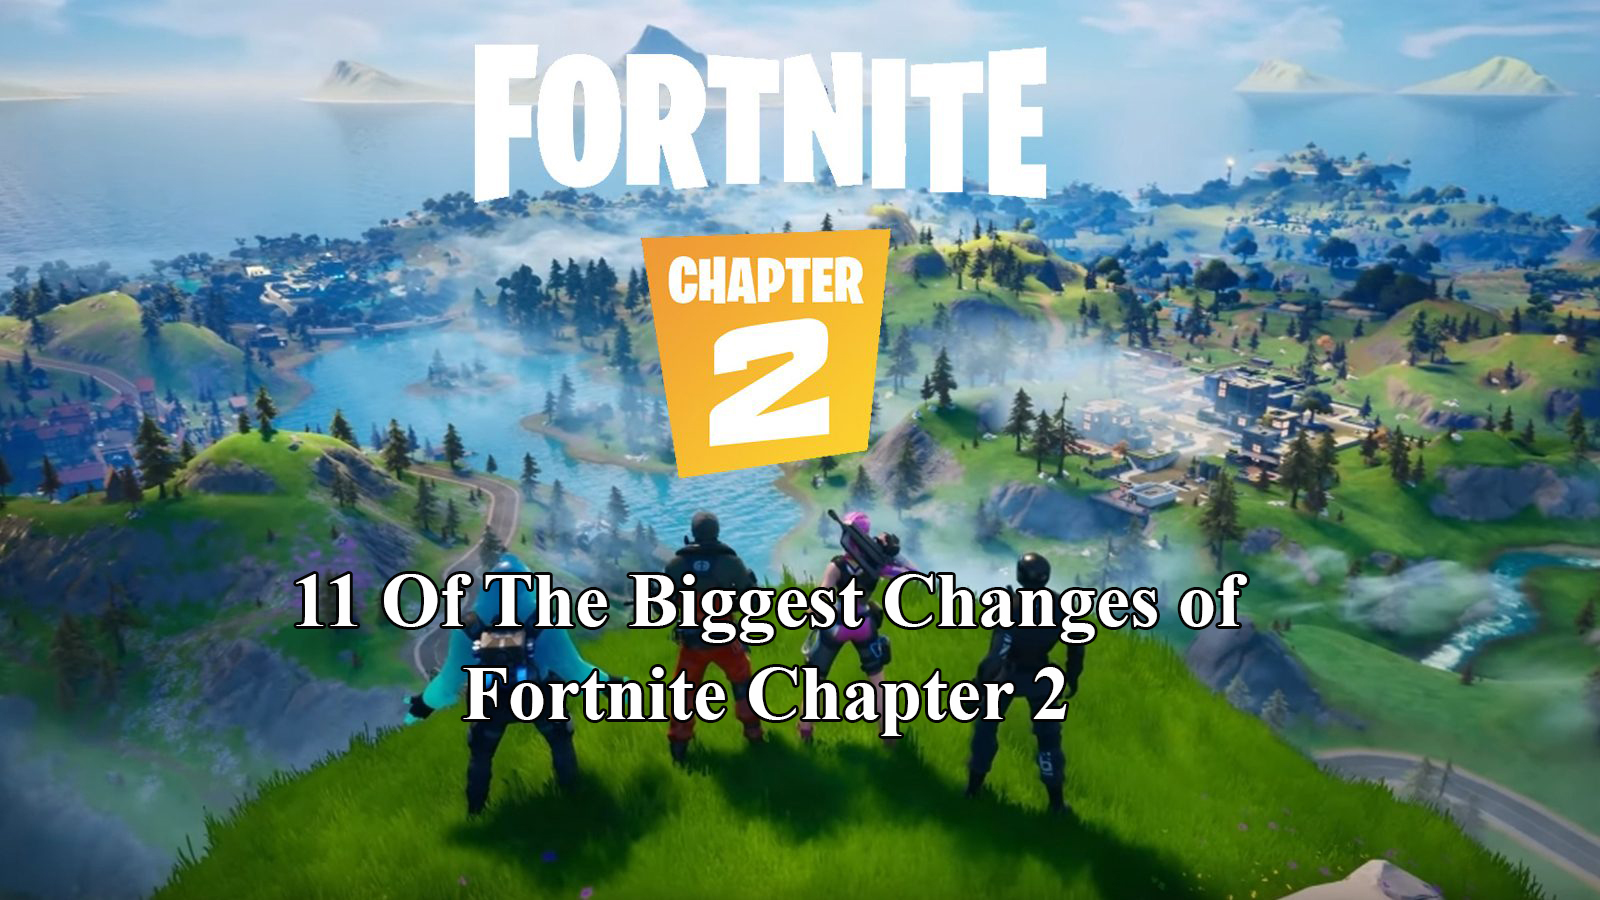 11 Of The Biggest Changes of Fortnite Chapter 2